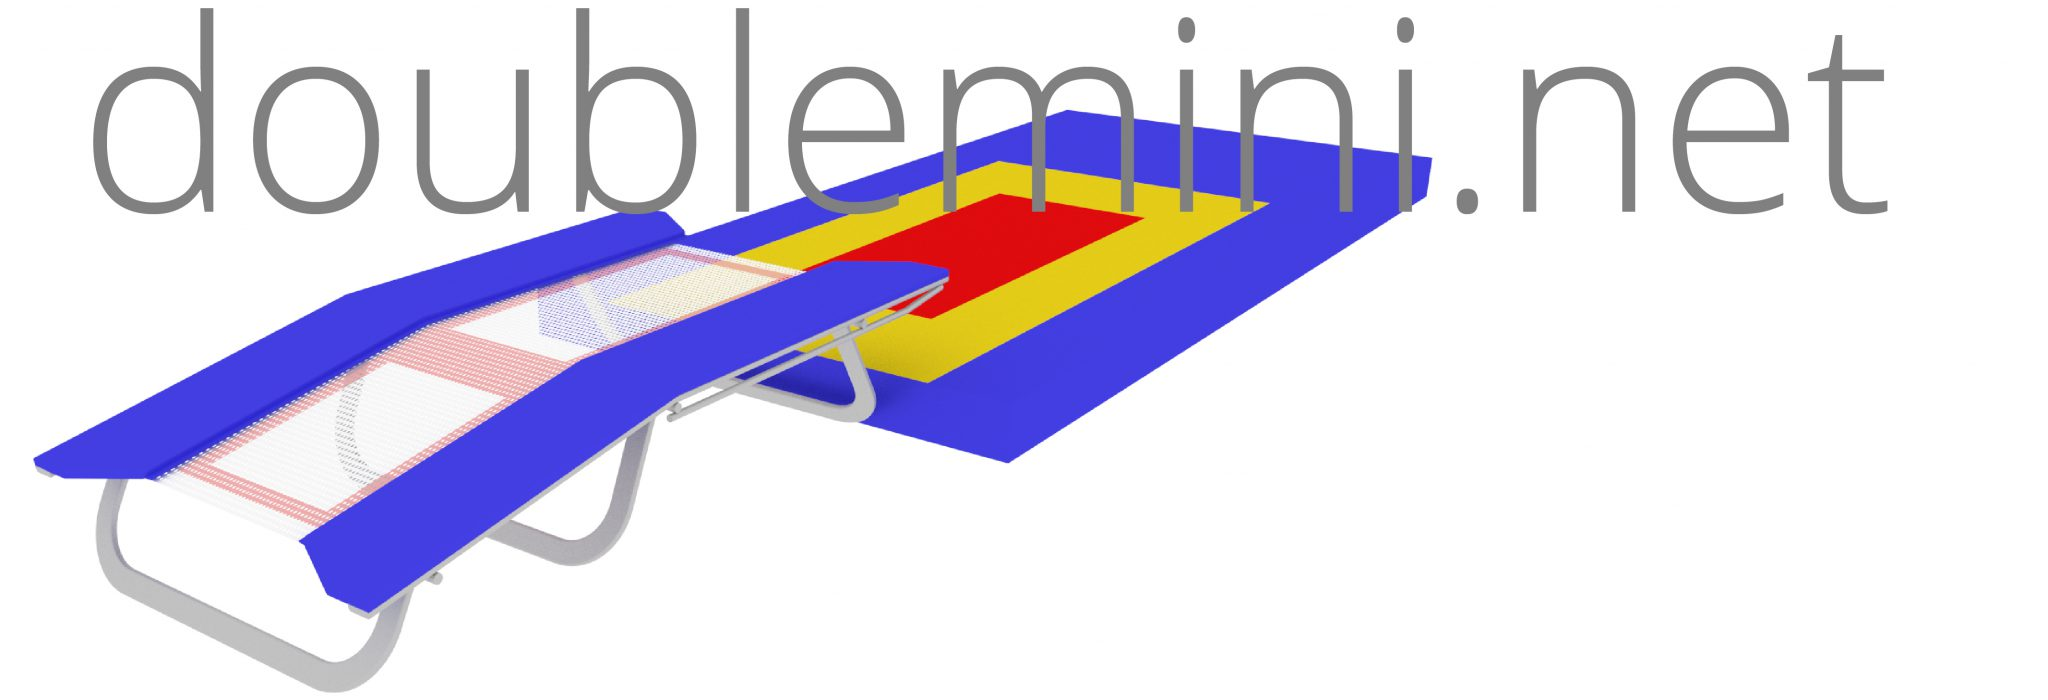 doublemini.net | Trampoline and Double Mini